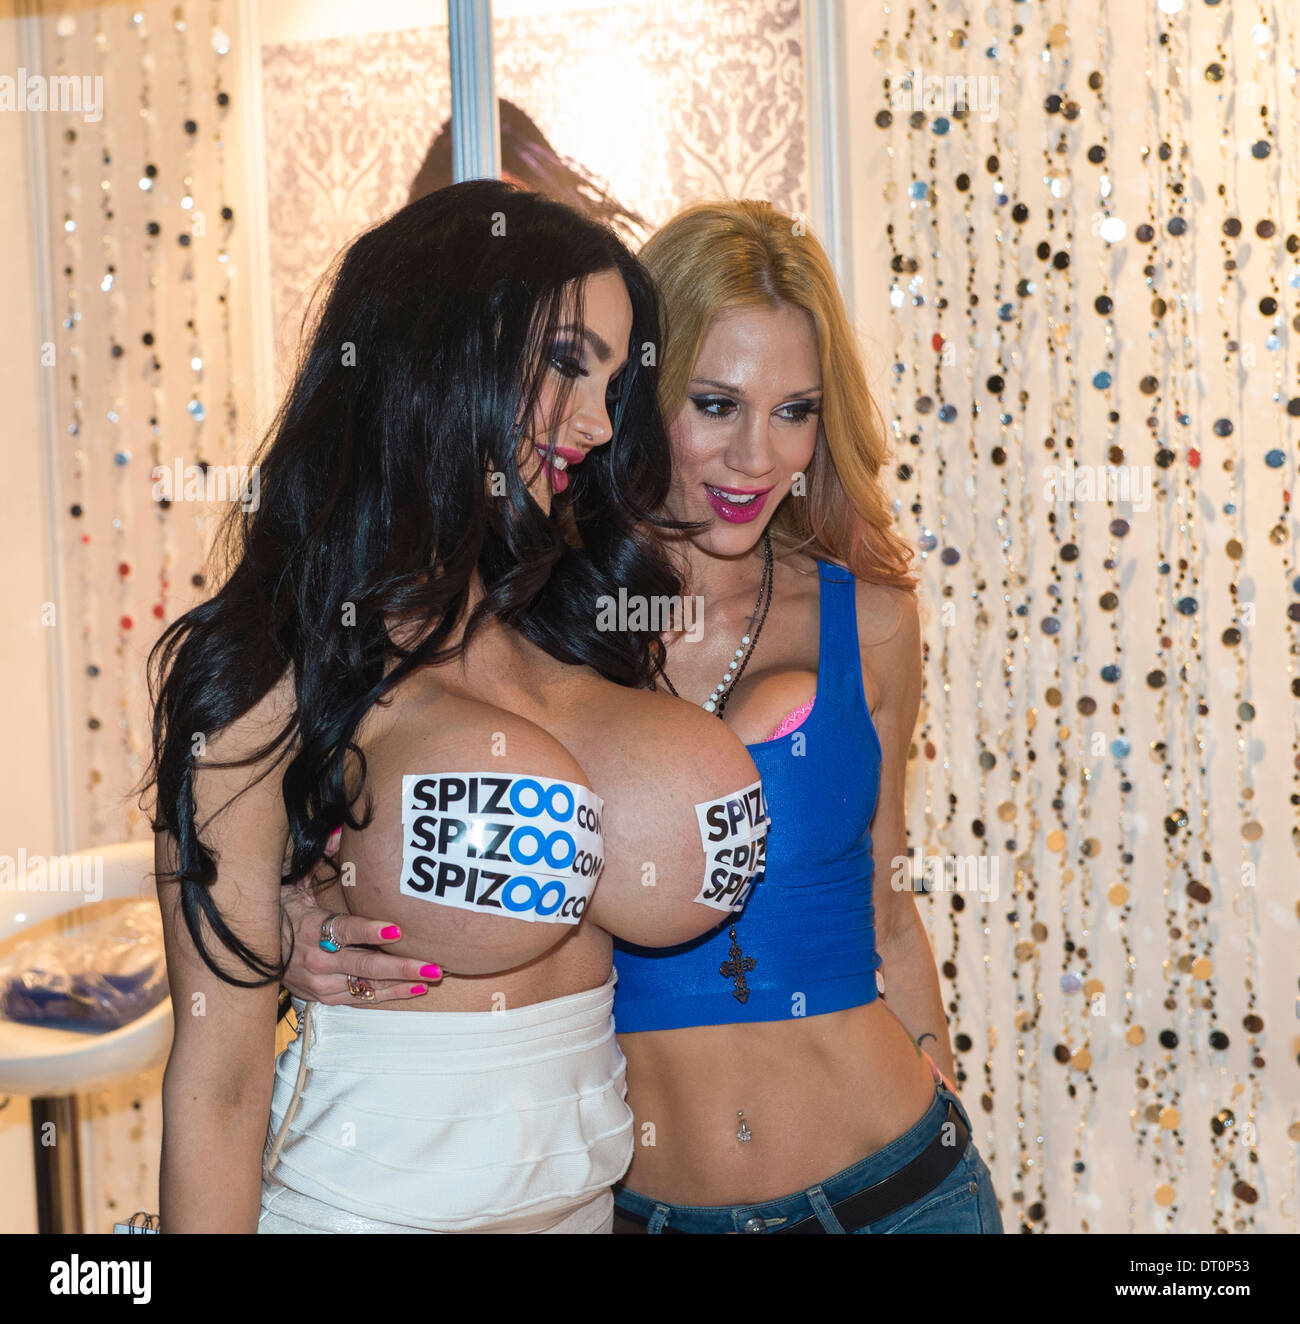 Anderssen Porn porn star amy anderssen at the avn adult entertainment expo